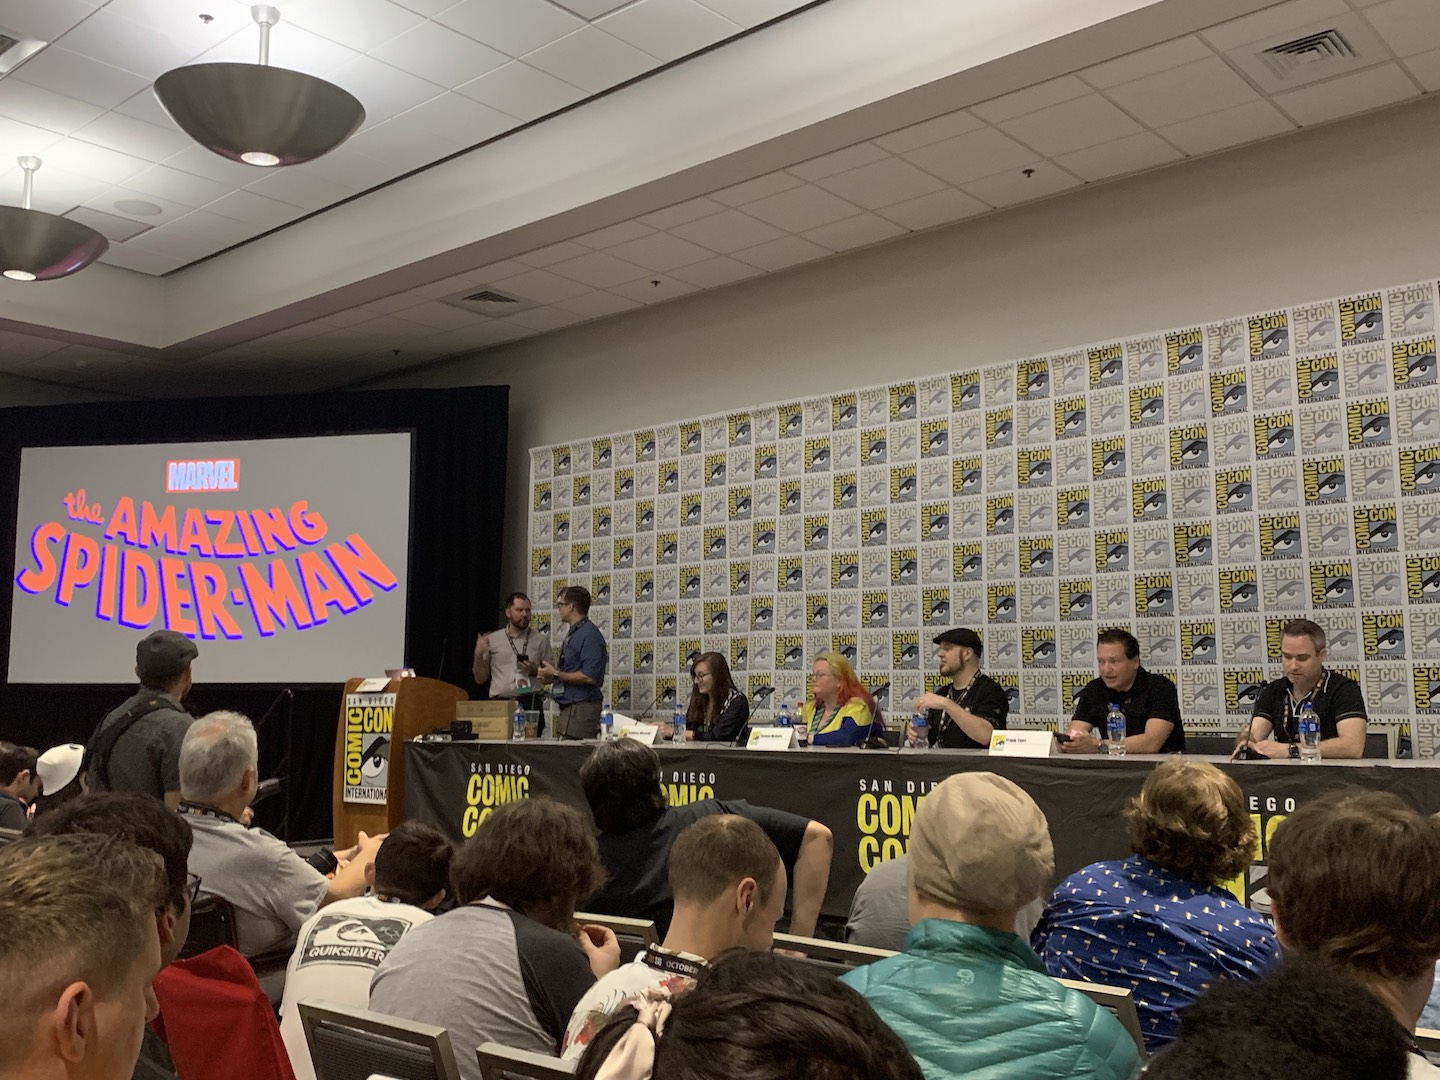 SDCC 2019: Spider-Man Panel features top talent, art reveals, and more